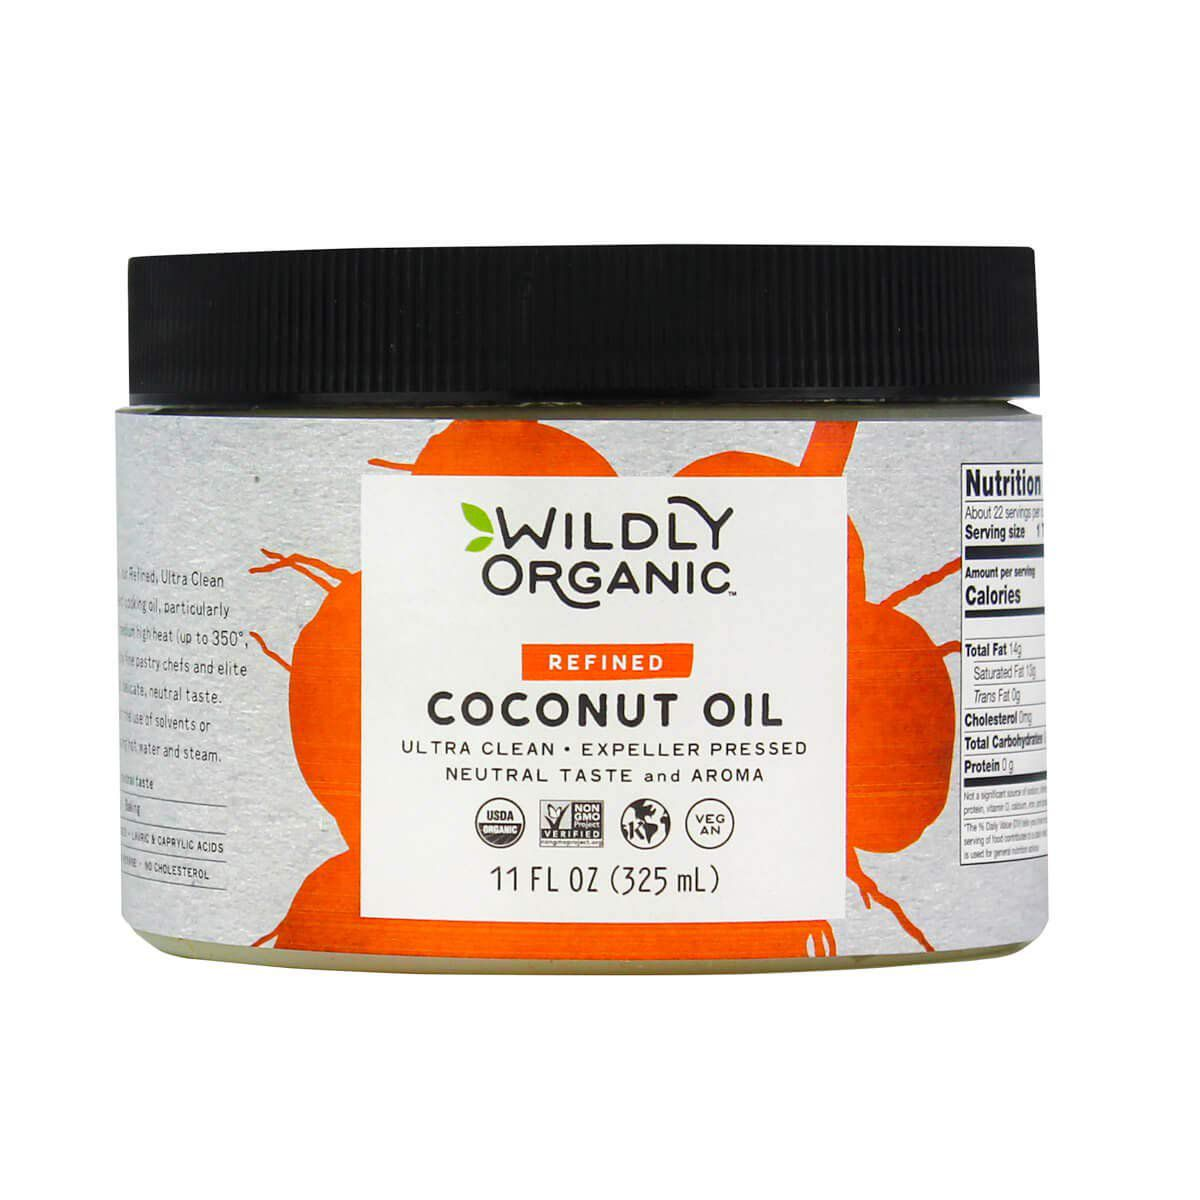 Wildly Organic Refined Organic Coconut Oil